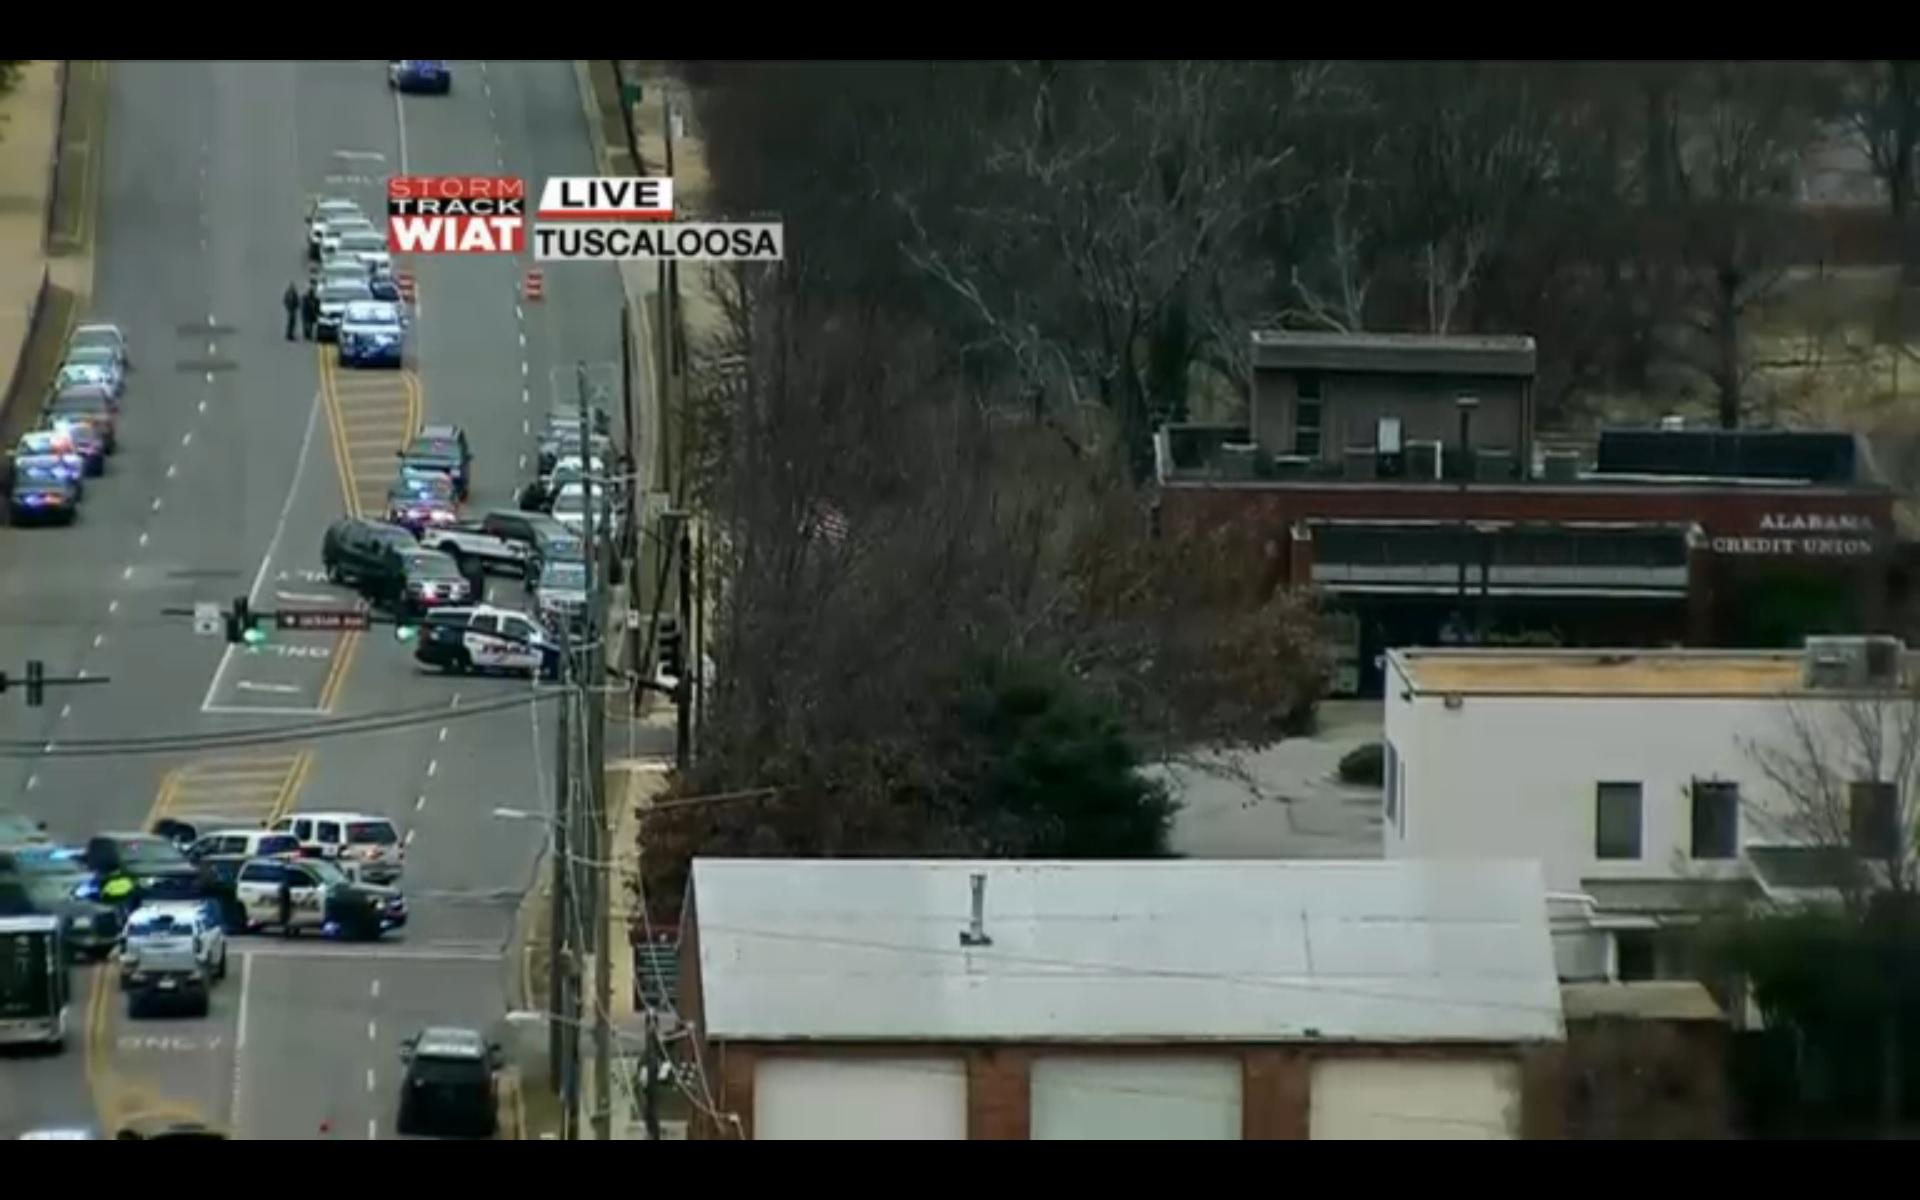 Update: Hostage situation in Tuscaloosa, Alabama ends with